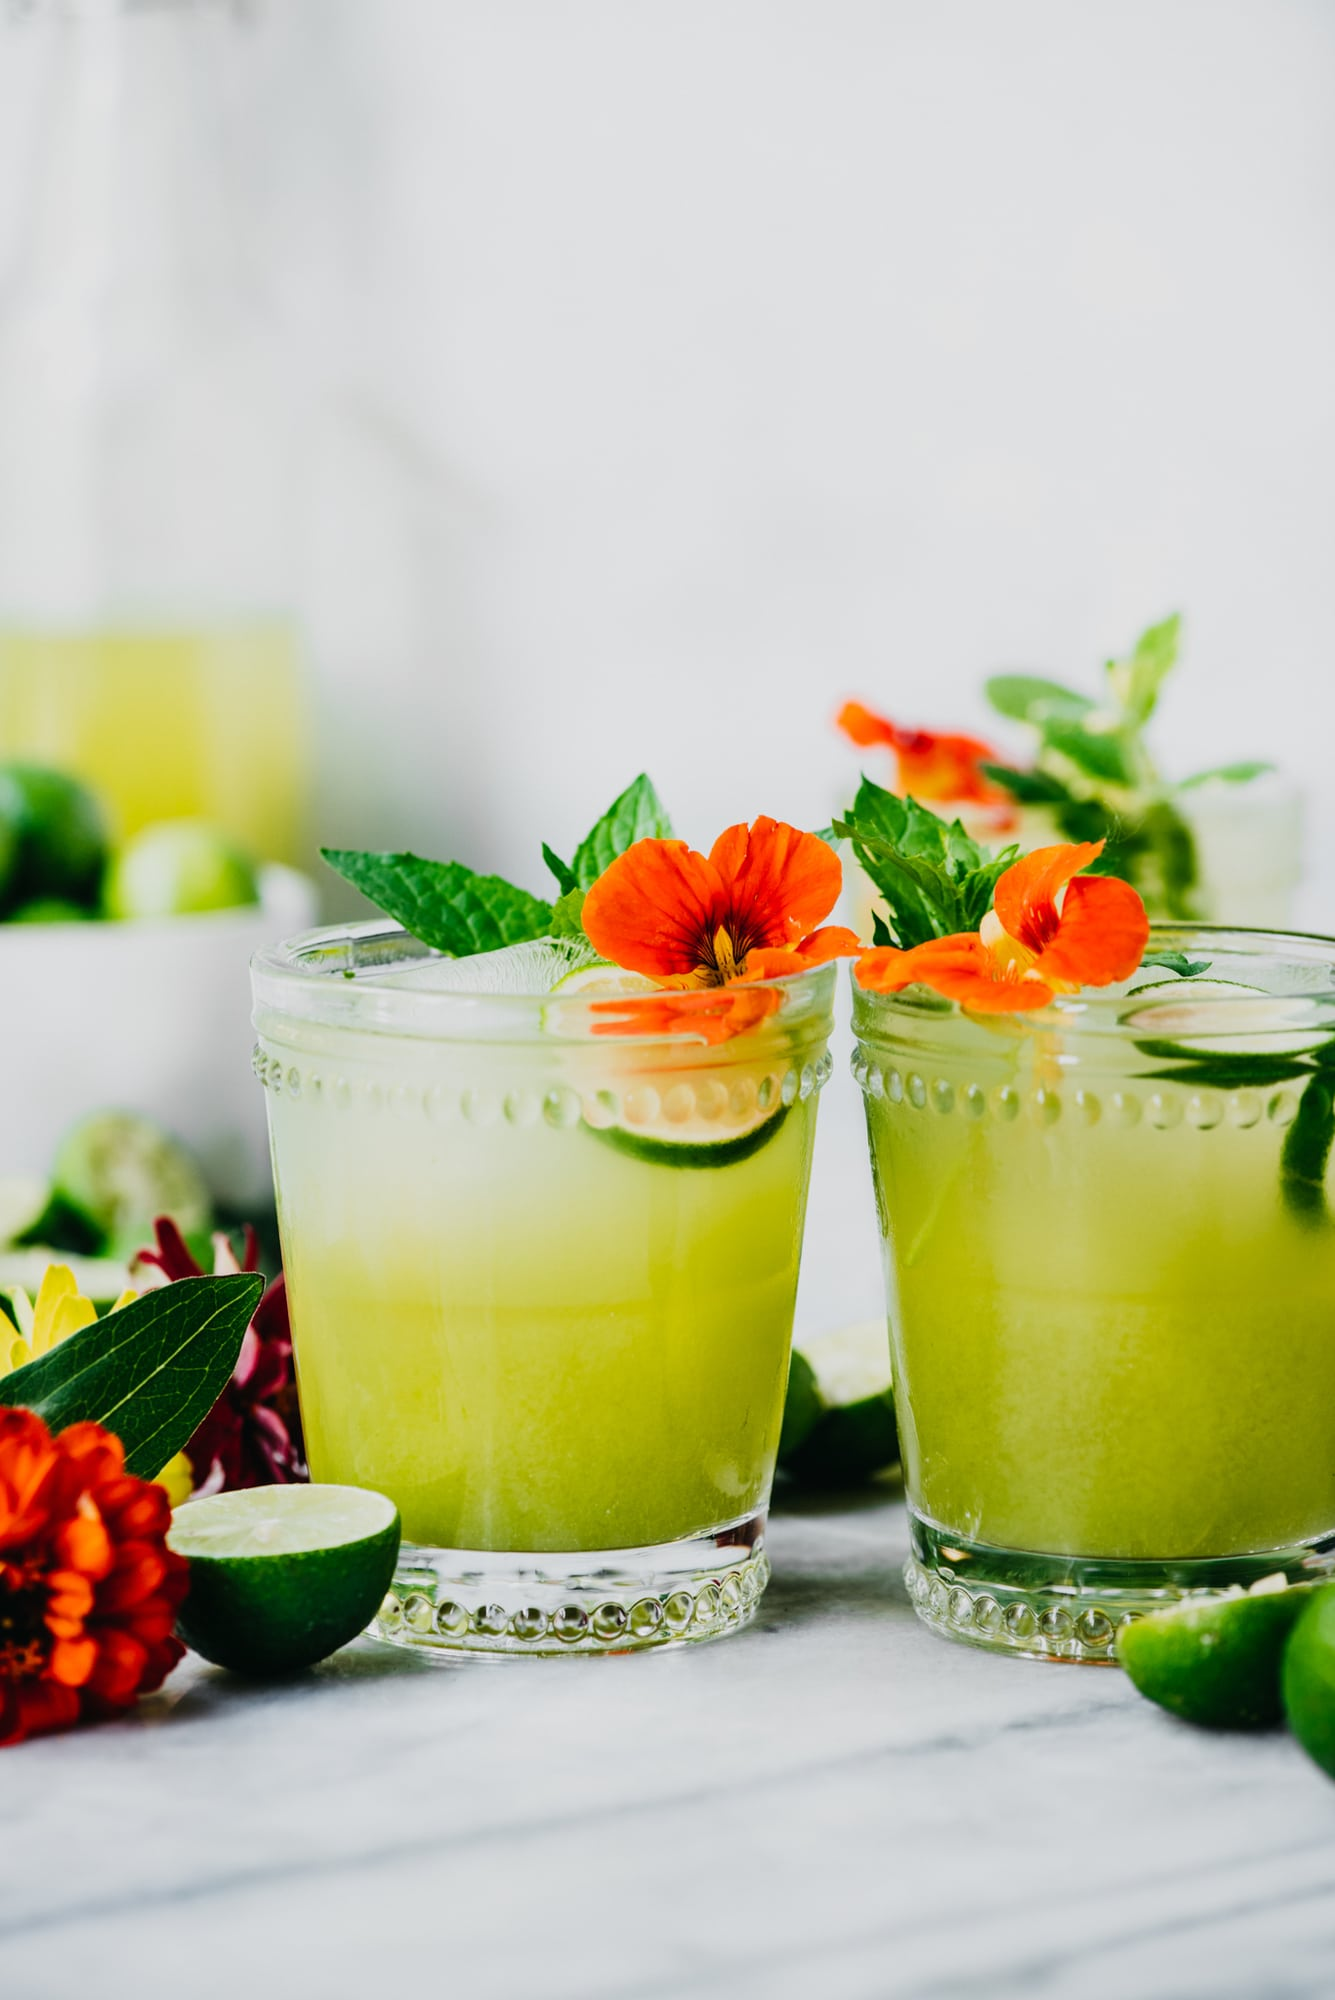 Side view of green cocktail with key limes and flowers